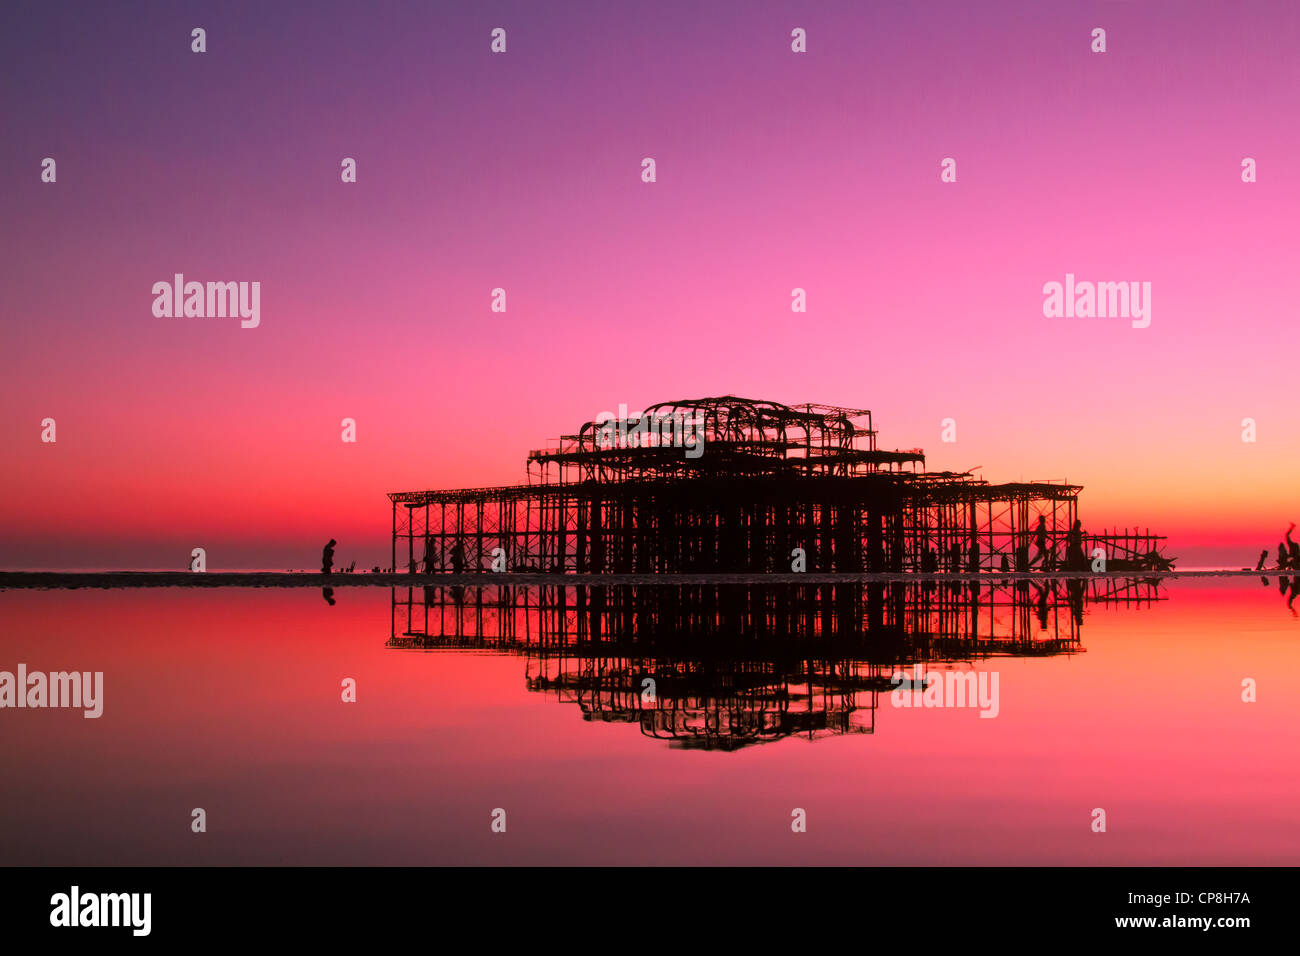 Brighton Pier West bei Sonnenuntergang, UK Stockbild